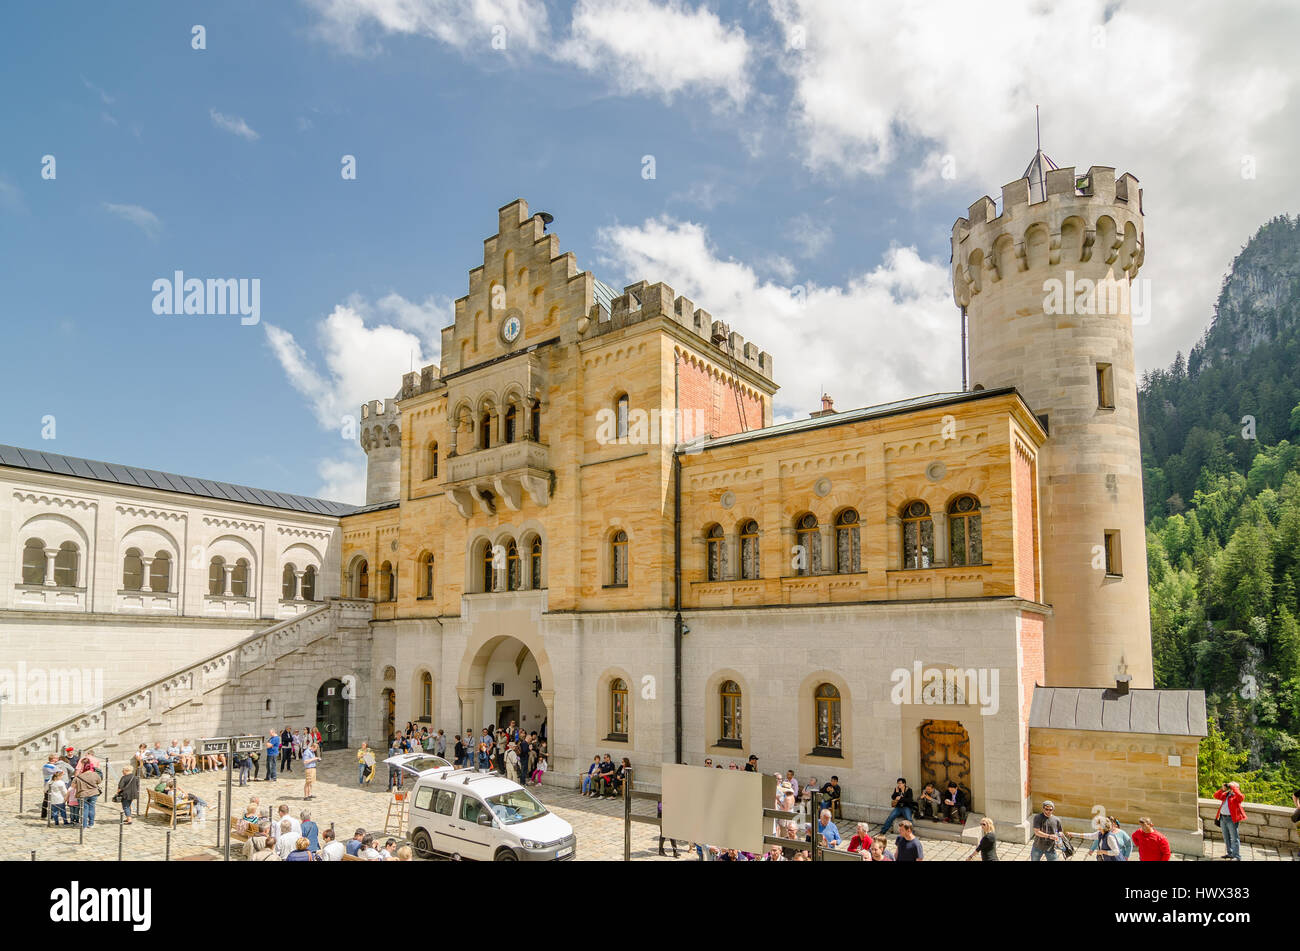 SCHWANGAU, GERMANY - JUNE 6, 2016: Neuschwanstein Castle is a nineteenth-century Romanesque Revival palace on a - Stock Image